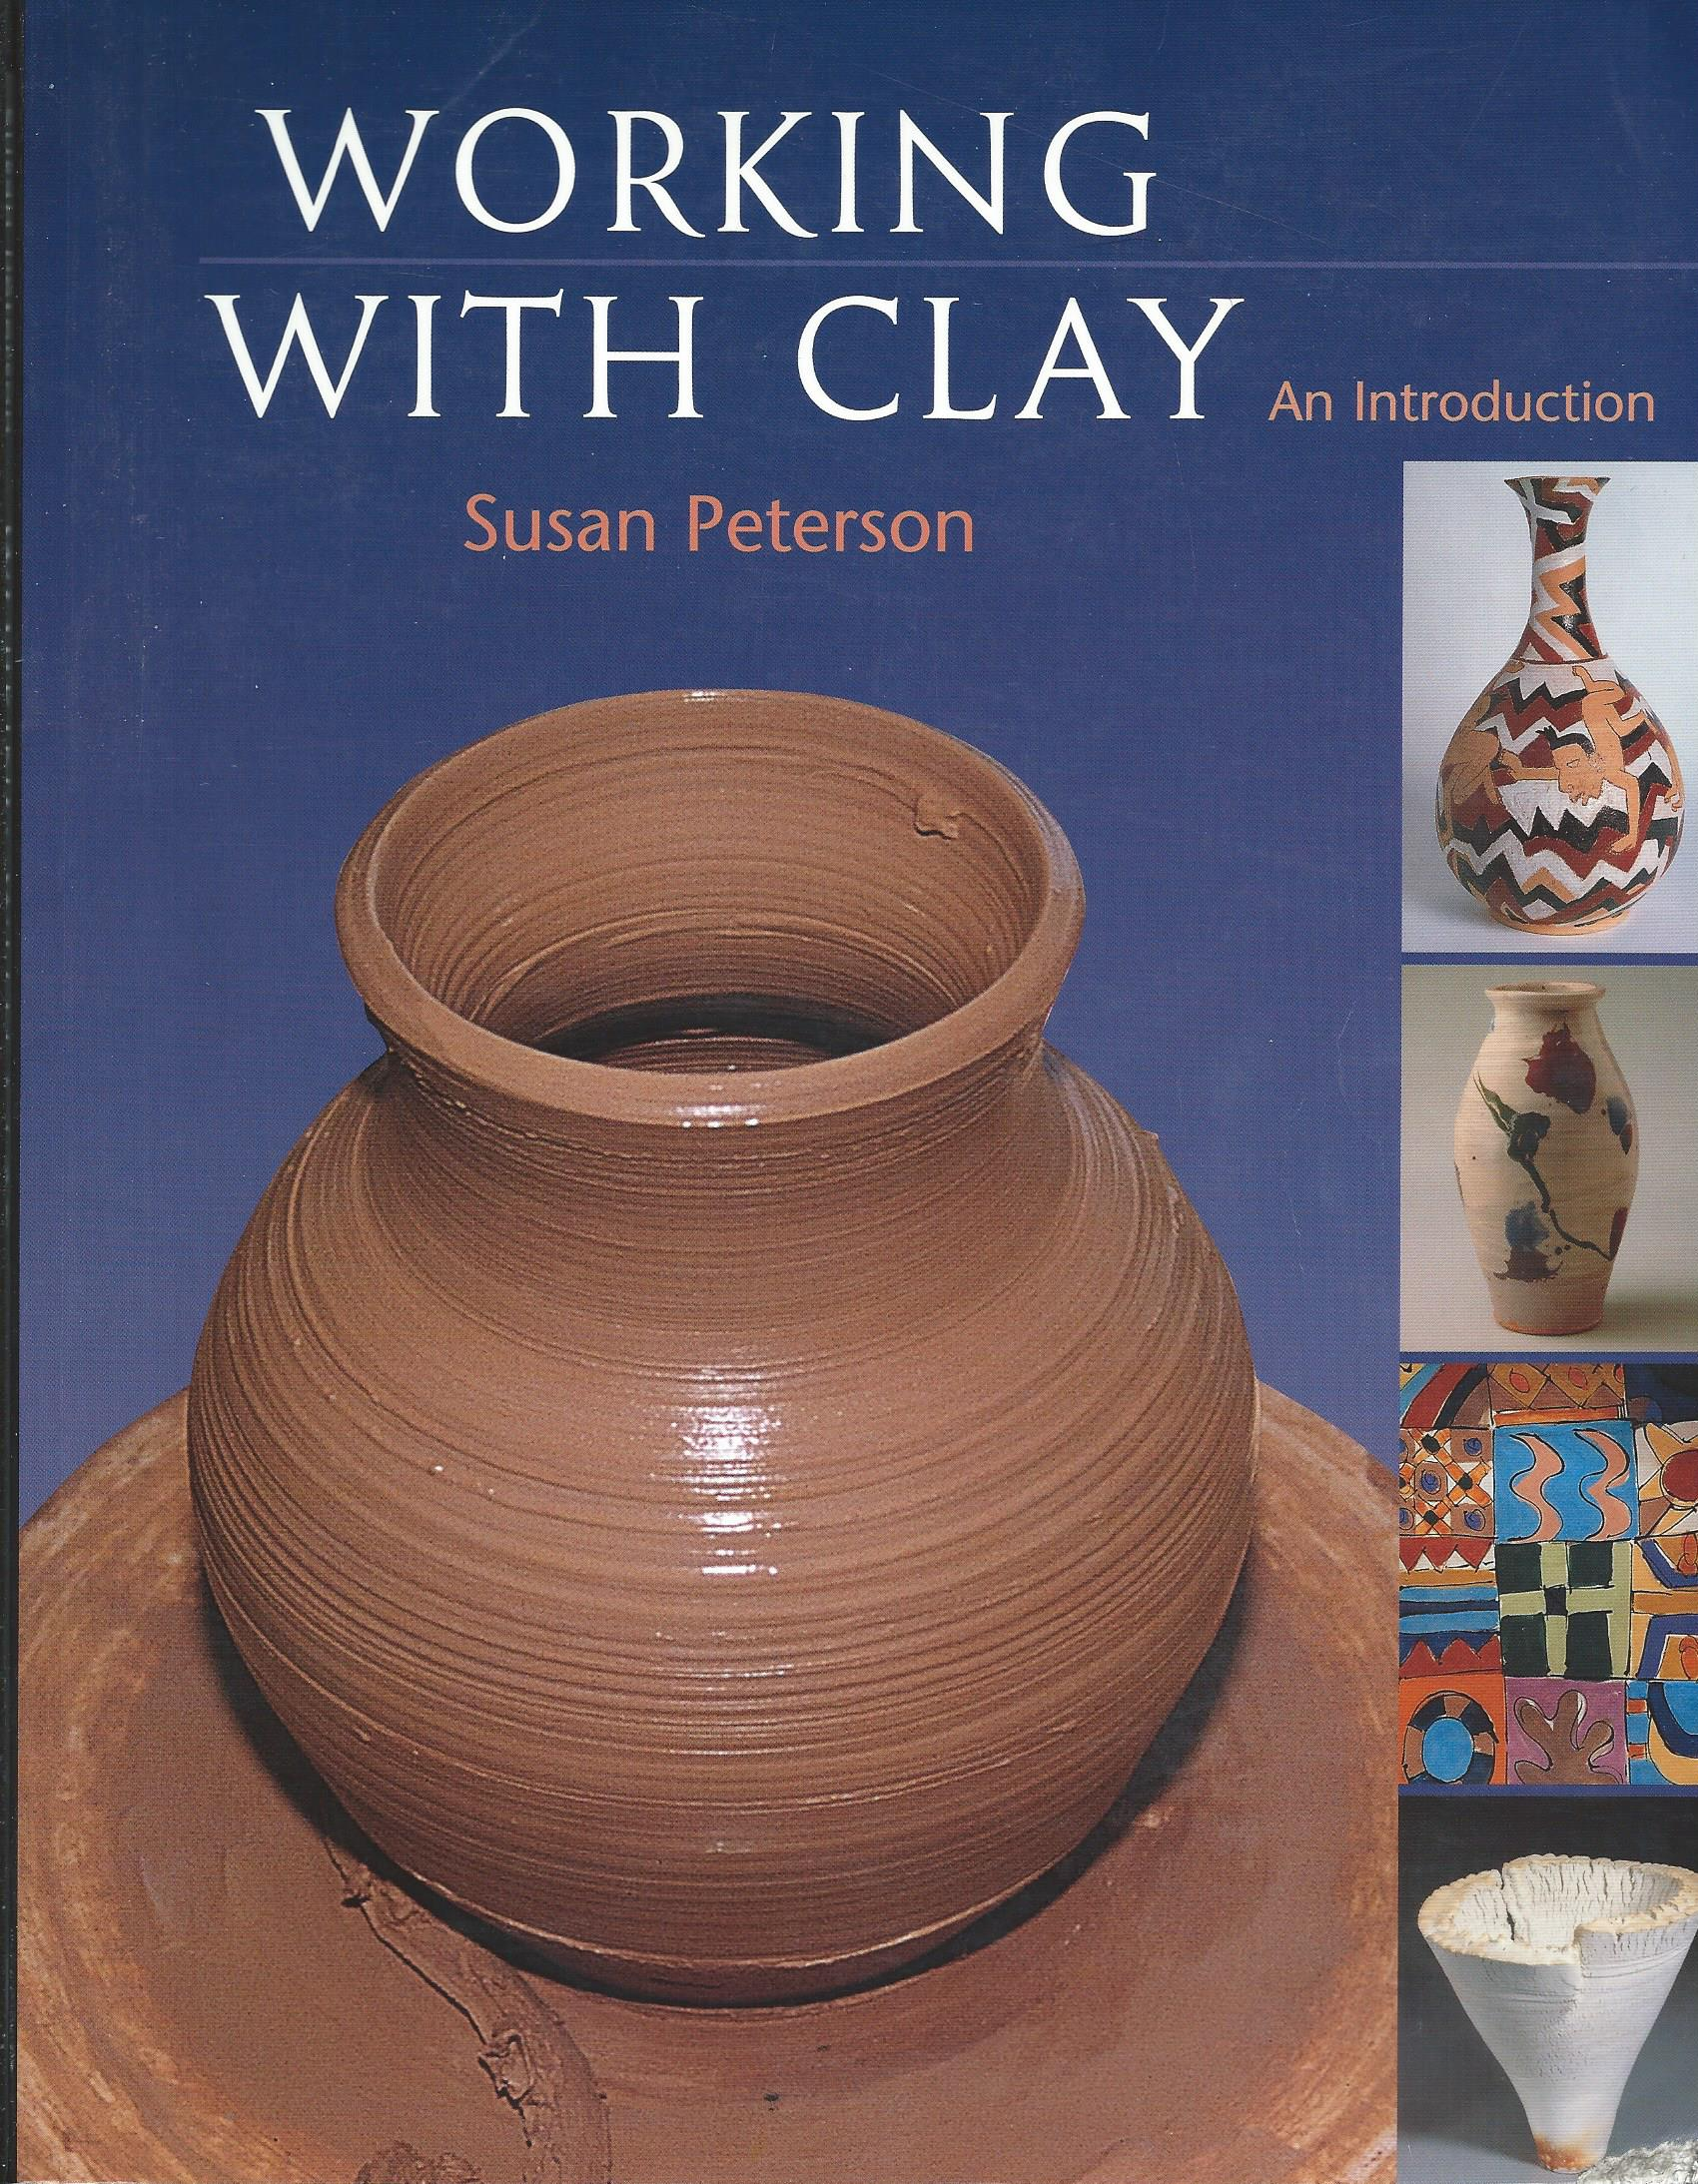 Image for An Introduction; WORKING WITH CLAY